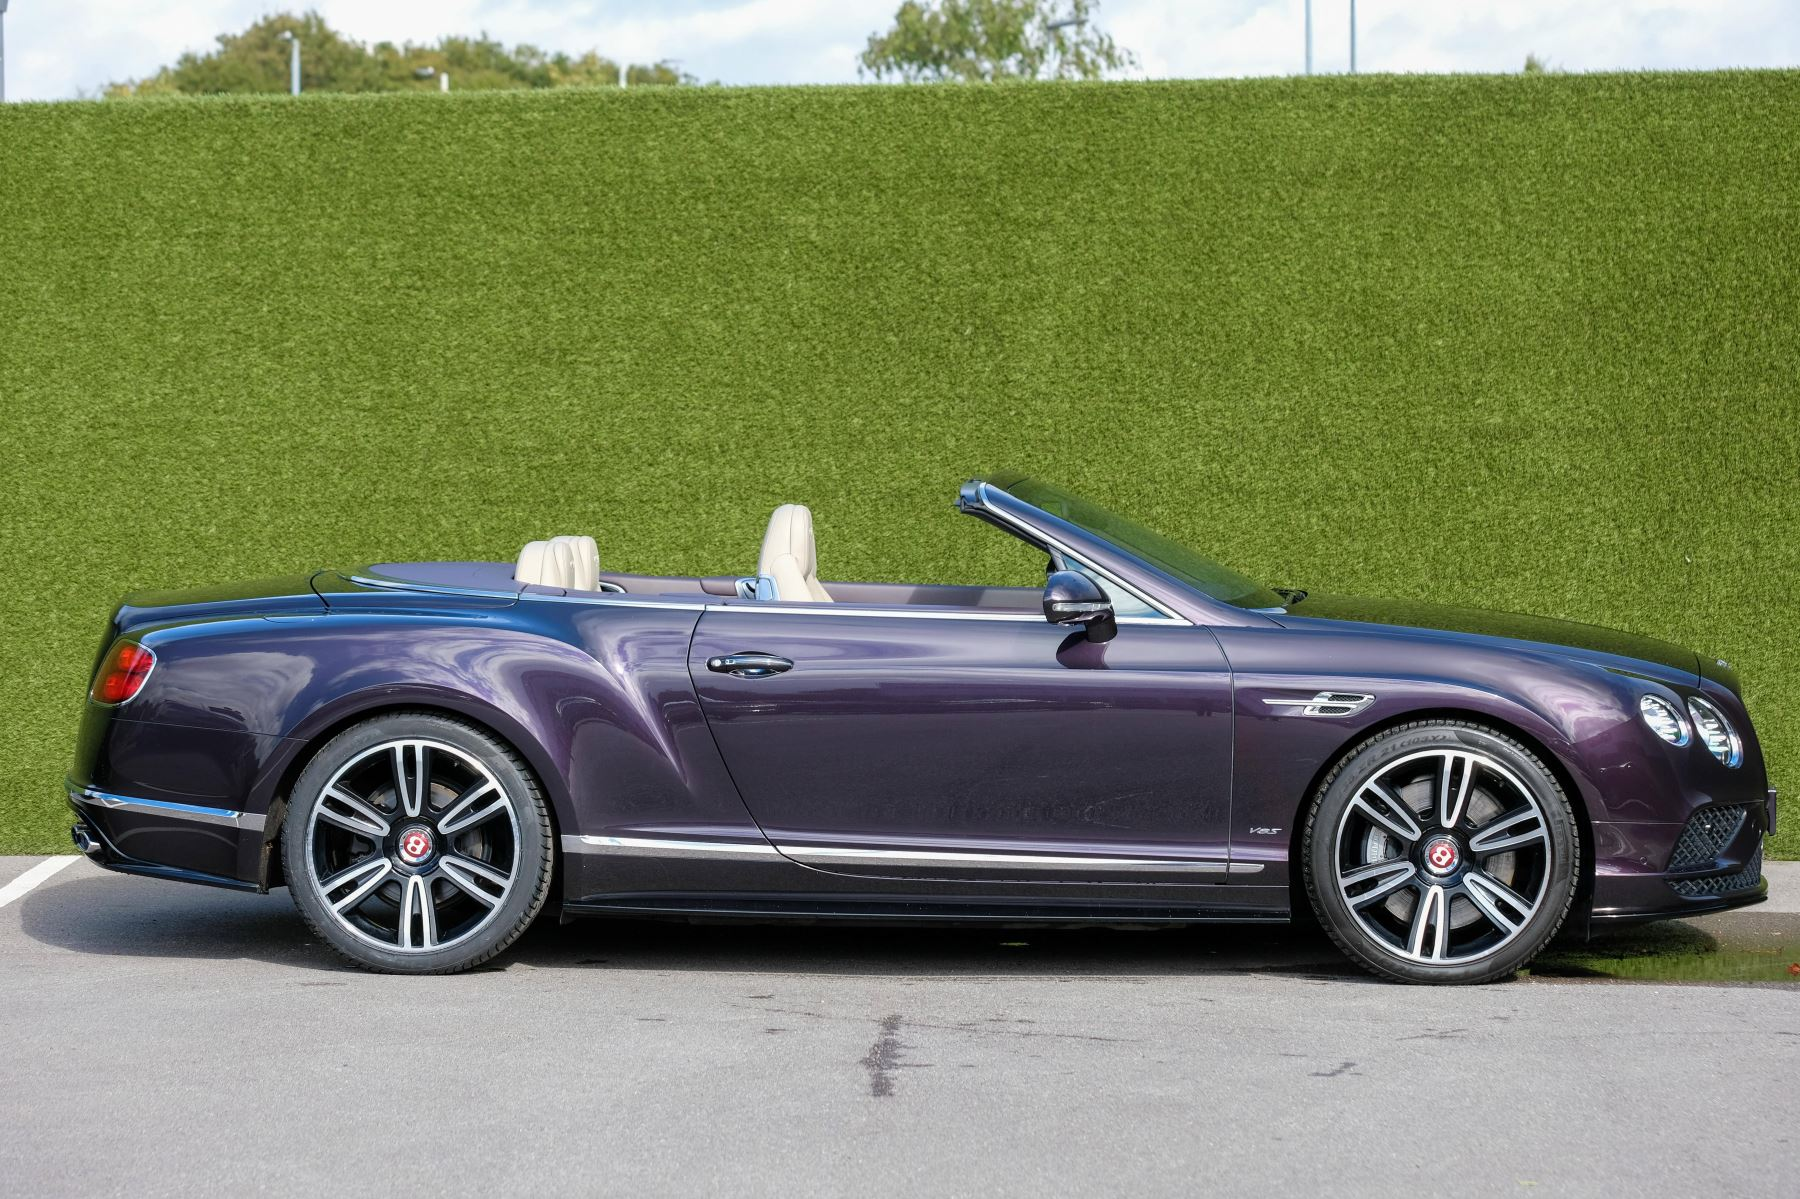 Bentley Continental GTC 4.0 V8 S Mulliner Driving Spec - Premier and All Seasons Specification image 3